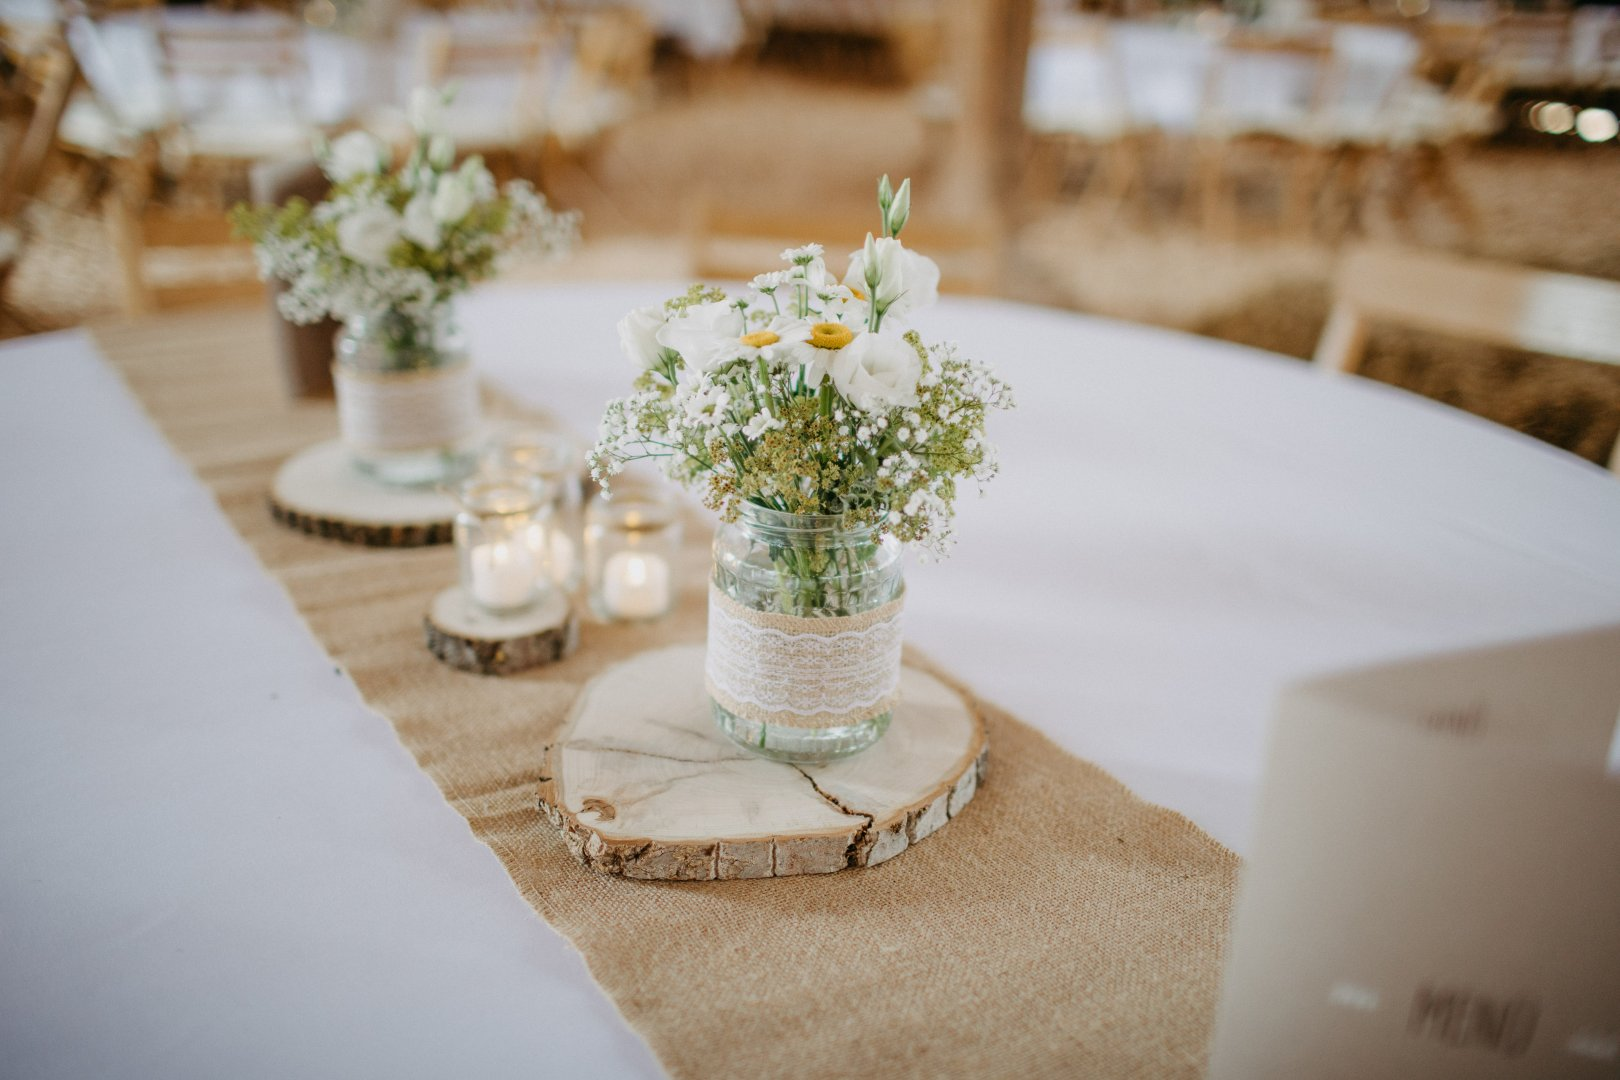 Centrepiece Photograph Tablecloth Table Yellow Rehearsal dinner Flower Textile Linens Restaurant Floral design Flower Arranging Floristry Plant Tableware Event Furniture Room Bouquet Ceremony Wildflower Interior design Wedding reception Banquet Interior design Cut flowers